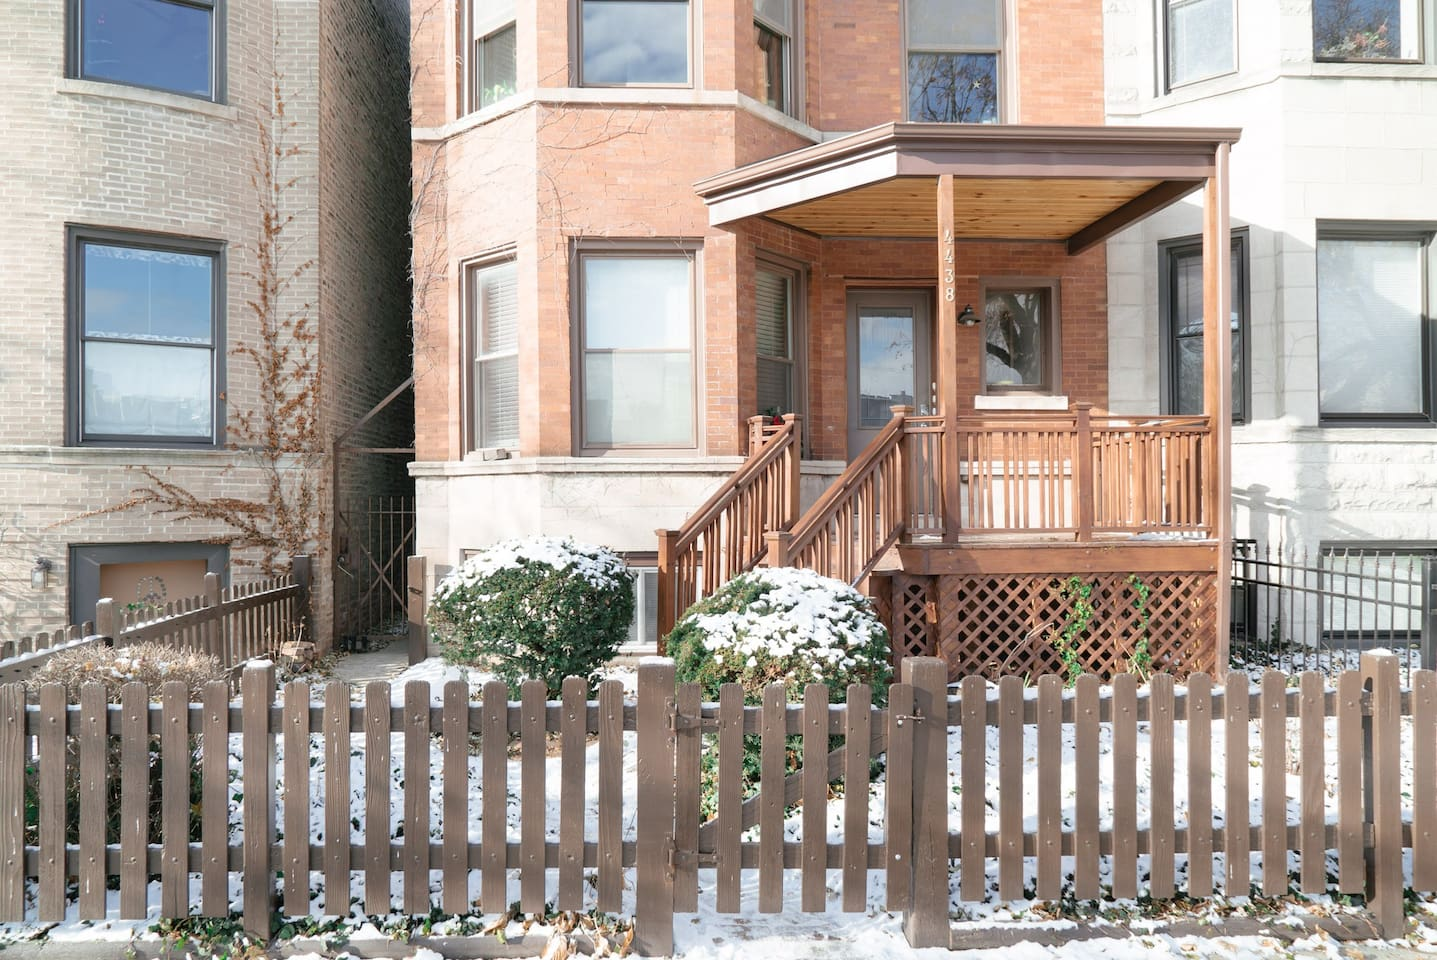 Easy Entrance with keypad on quiet, tree-lined street